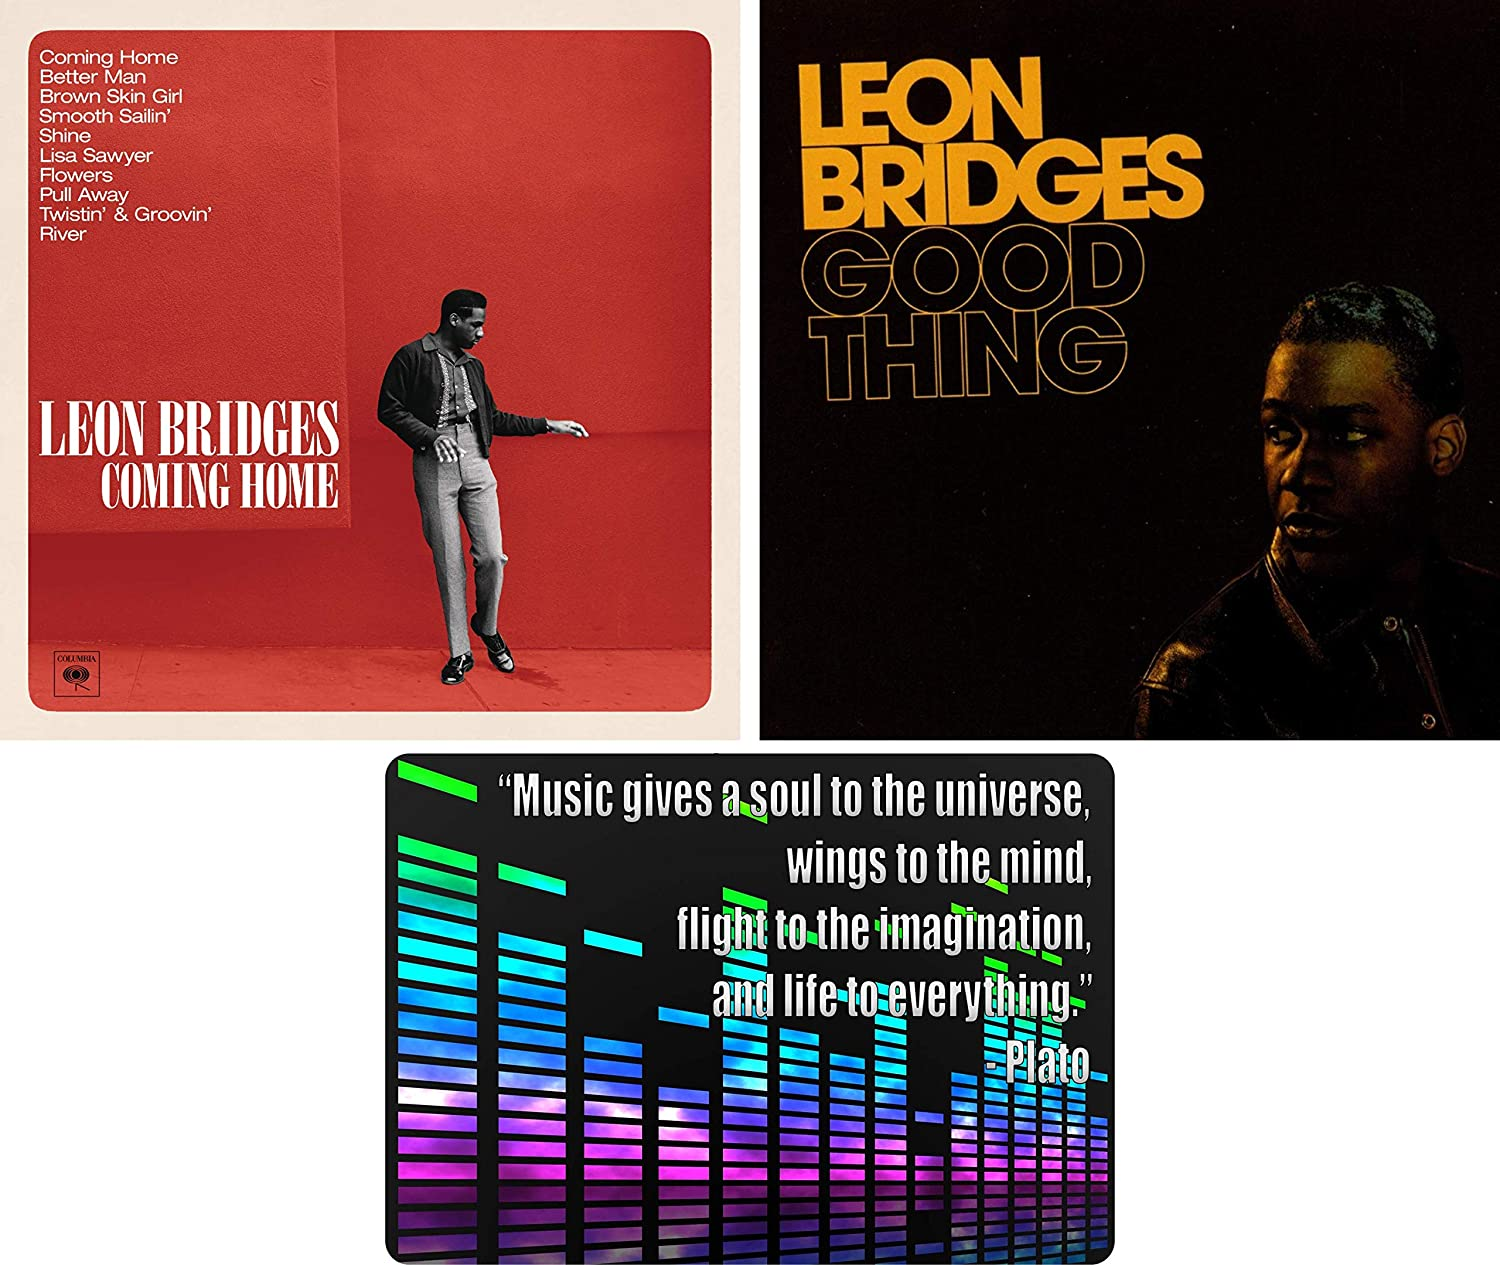 Leon Bridges: Complete Studio Albums Discography CD Collection with Bonus Art Card (Coming Home / Good Thing)